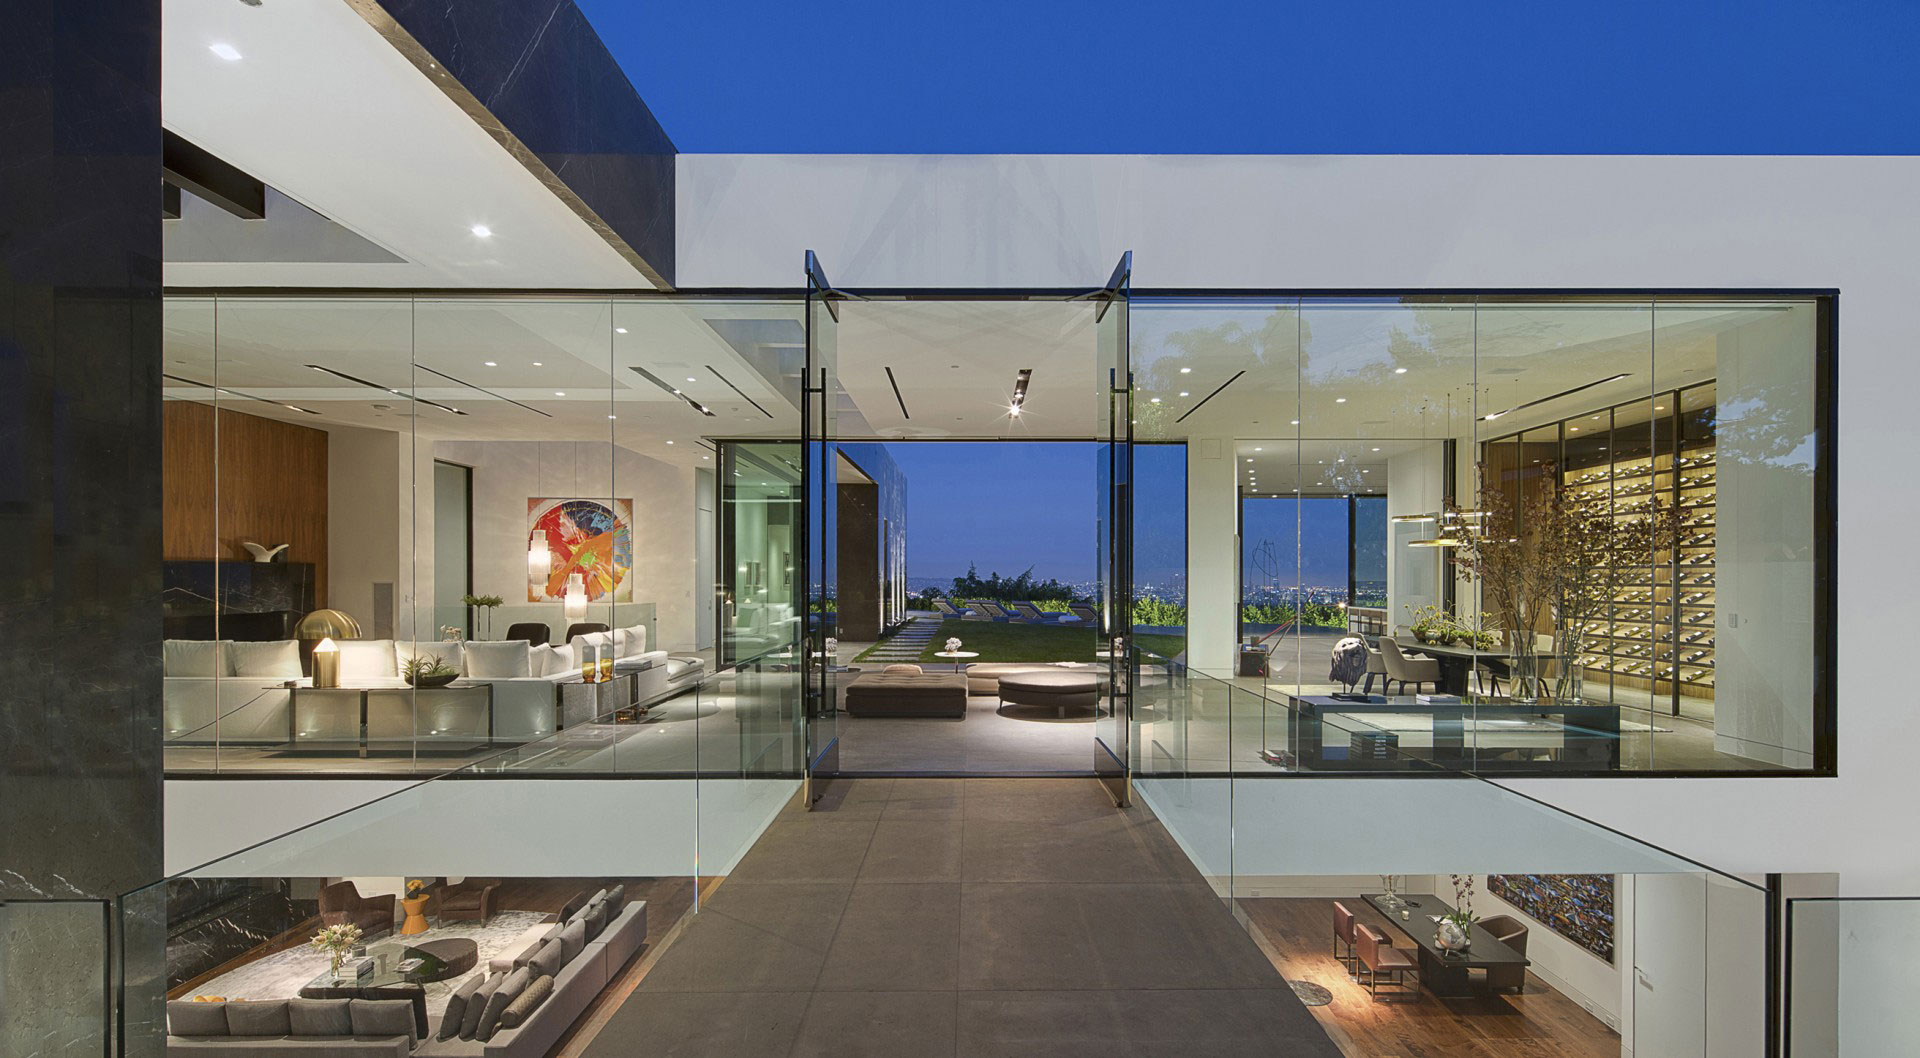 glass-house-design  Interior Design Ideas. - ^